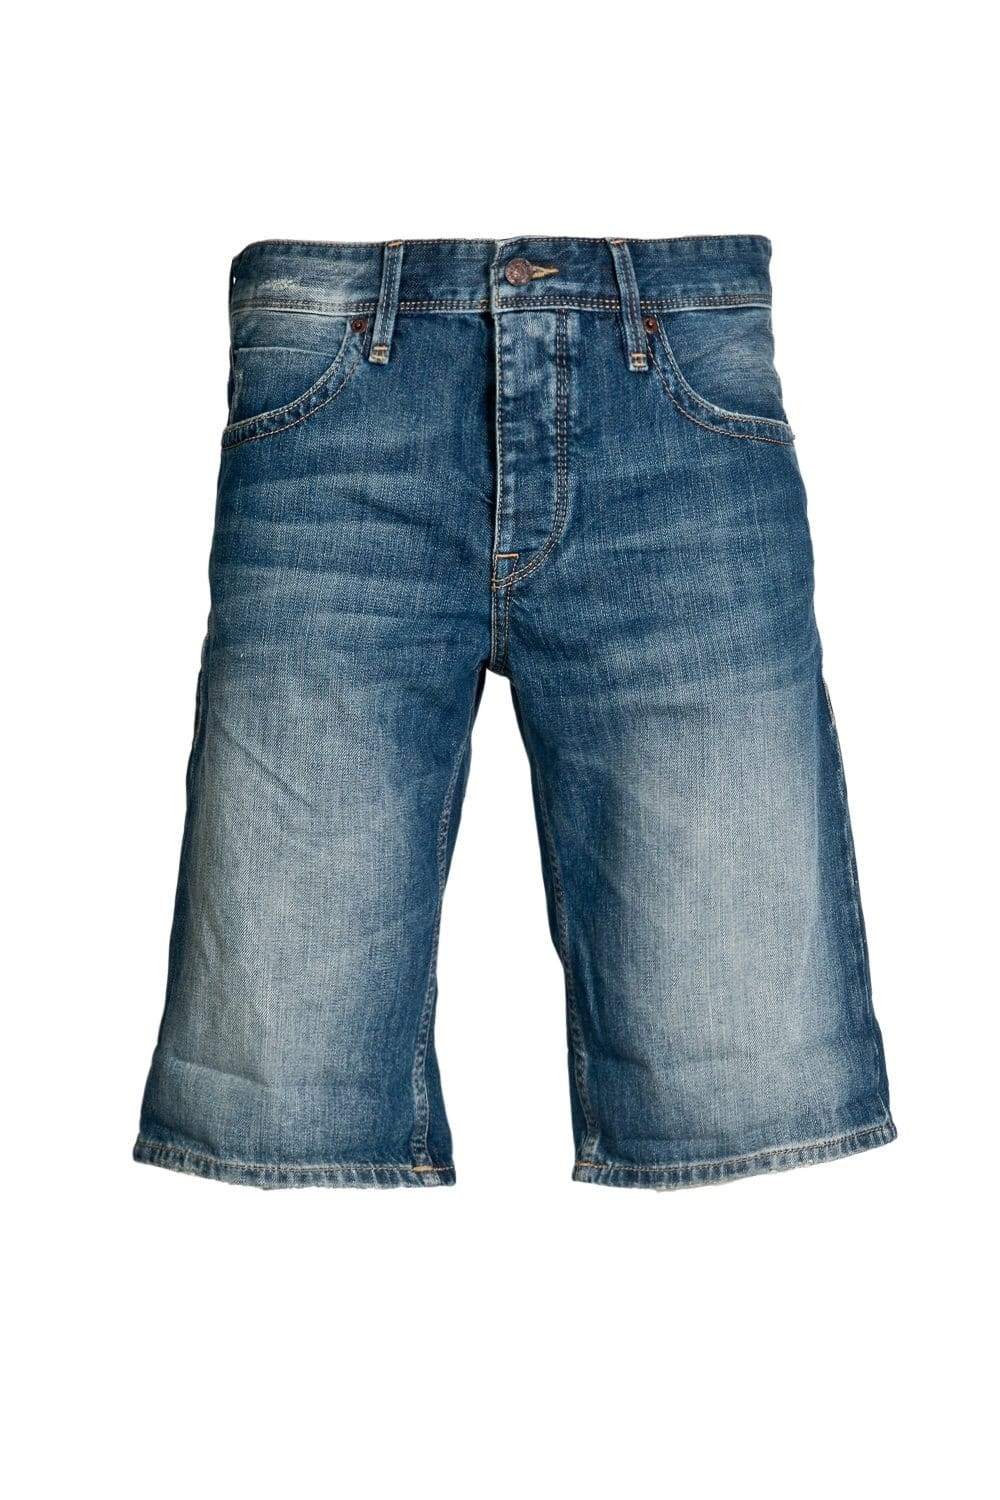 hugo boss jean shorts